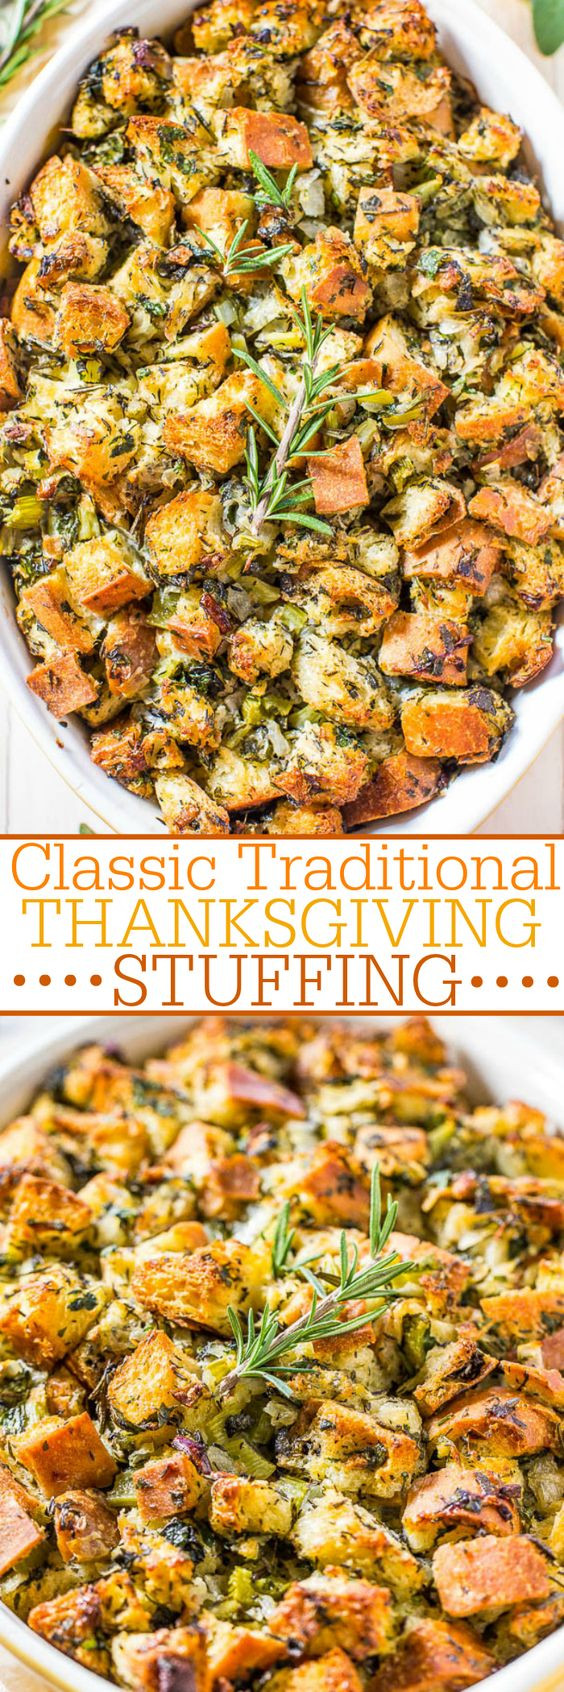 Classic Turkey Recipes Thanksgiving  The BEST Thanksgiving Dinner Holiday Favorite Menu Recipes